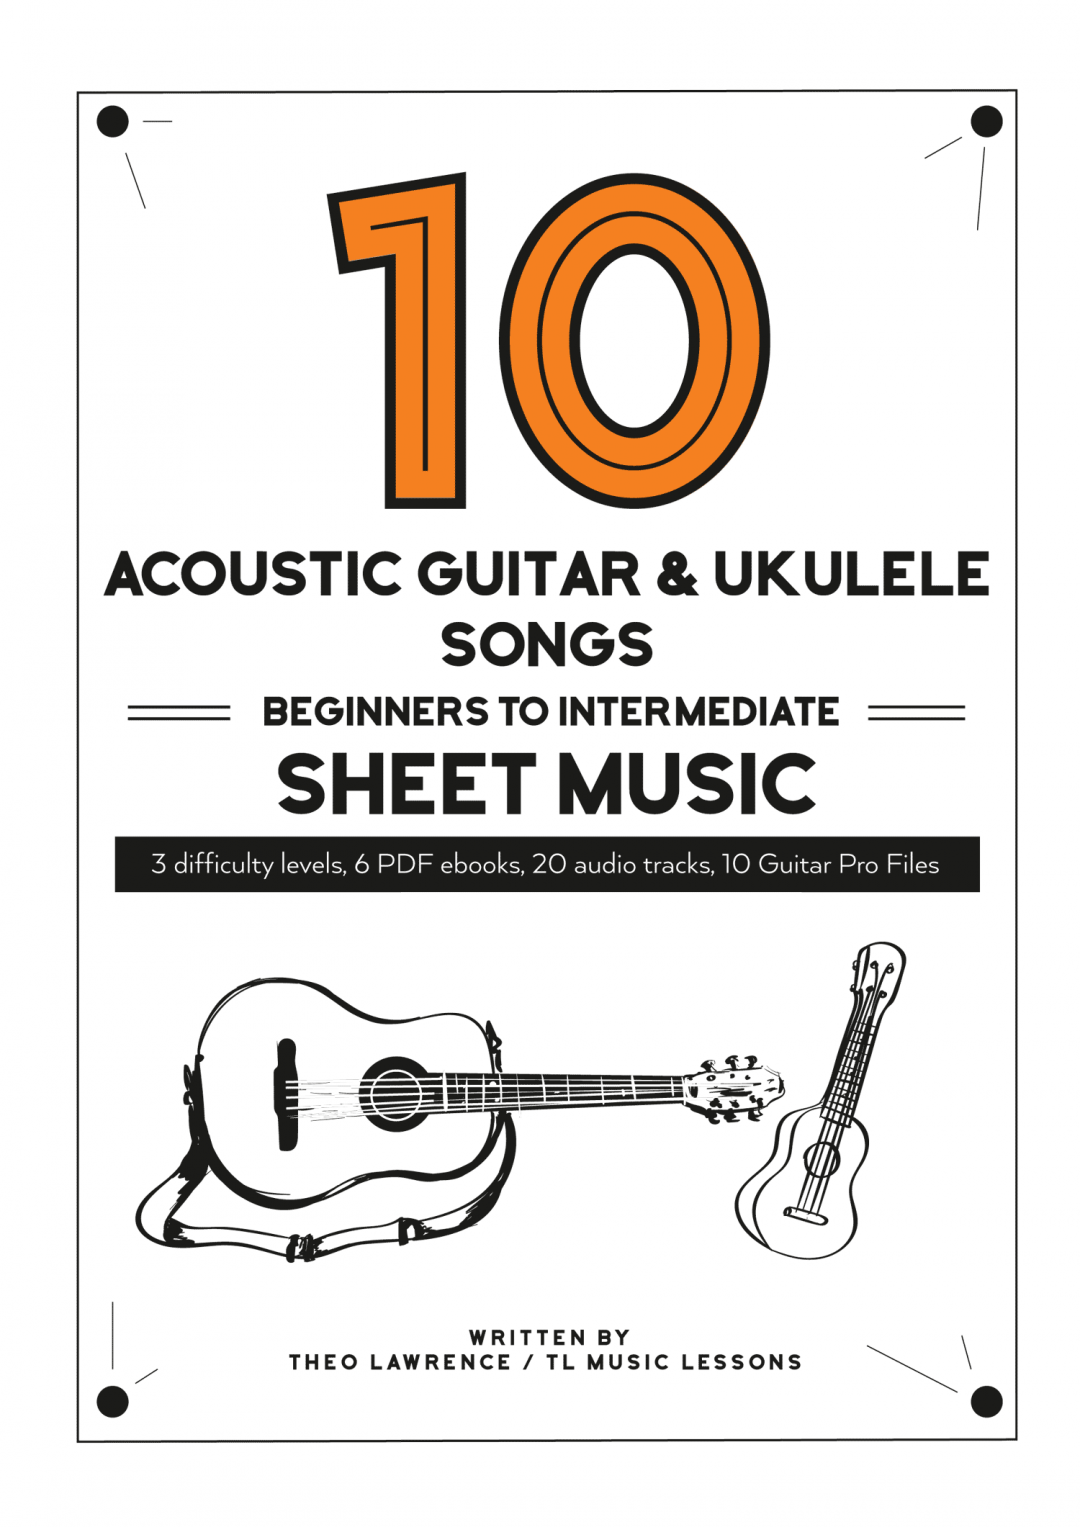 (Premium) – 10 Acoustic Guitar & Ukulele Songs – Beginners to Intermediate – Audio & PDF Sheet Music Ebooks